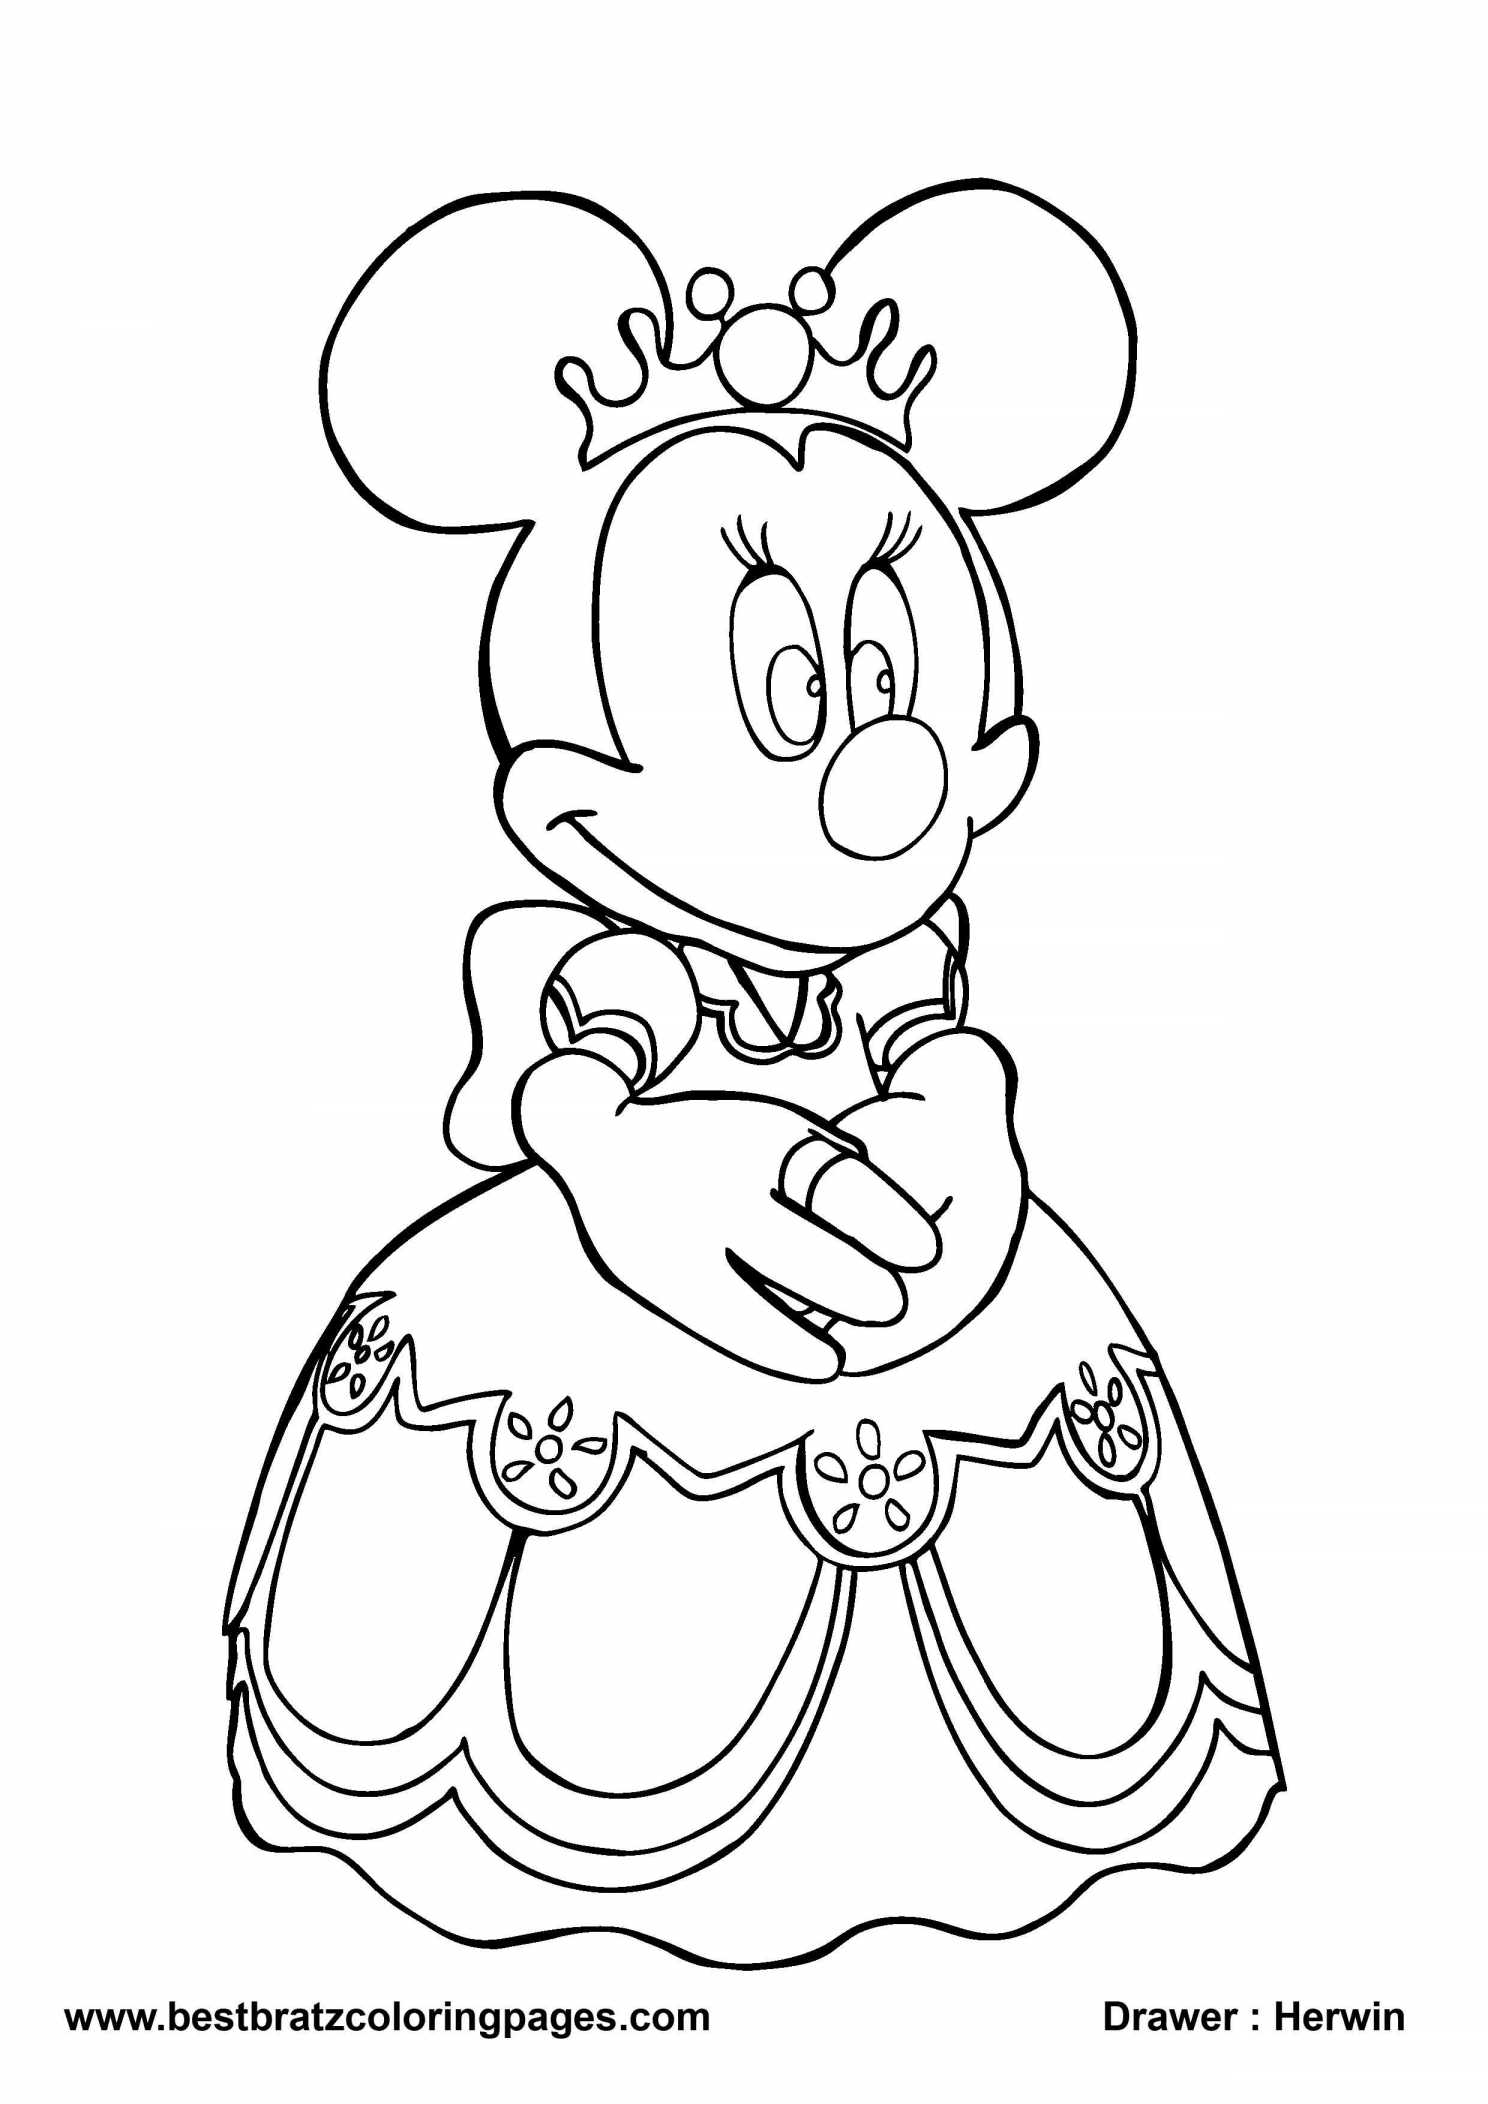 library coloring pages Download-Library Mouse Coloring Page Free Mickey Mouse Christmas Coloring Pages to Print Minnie Mouse 2-c